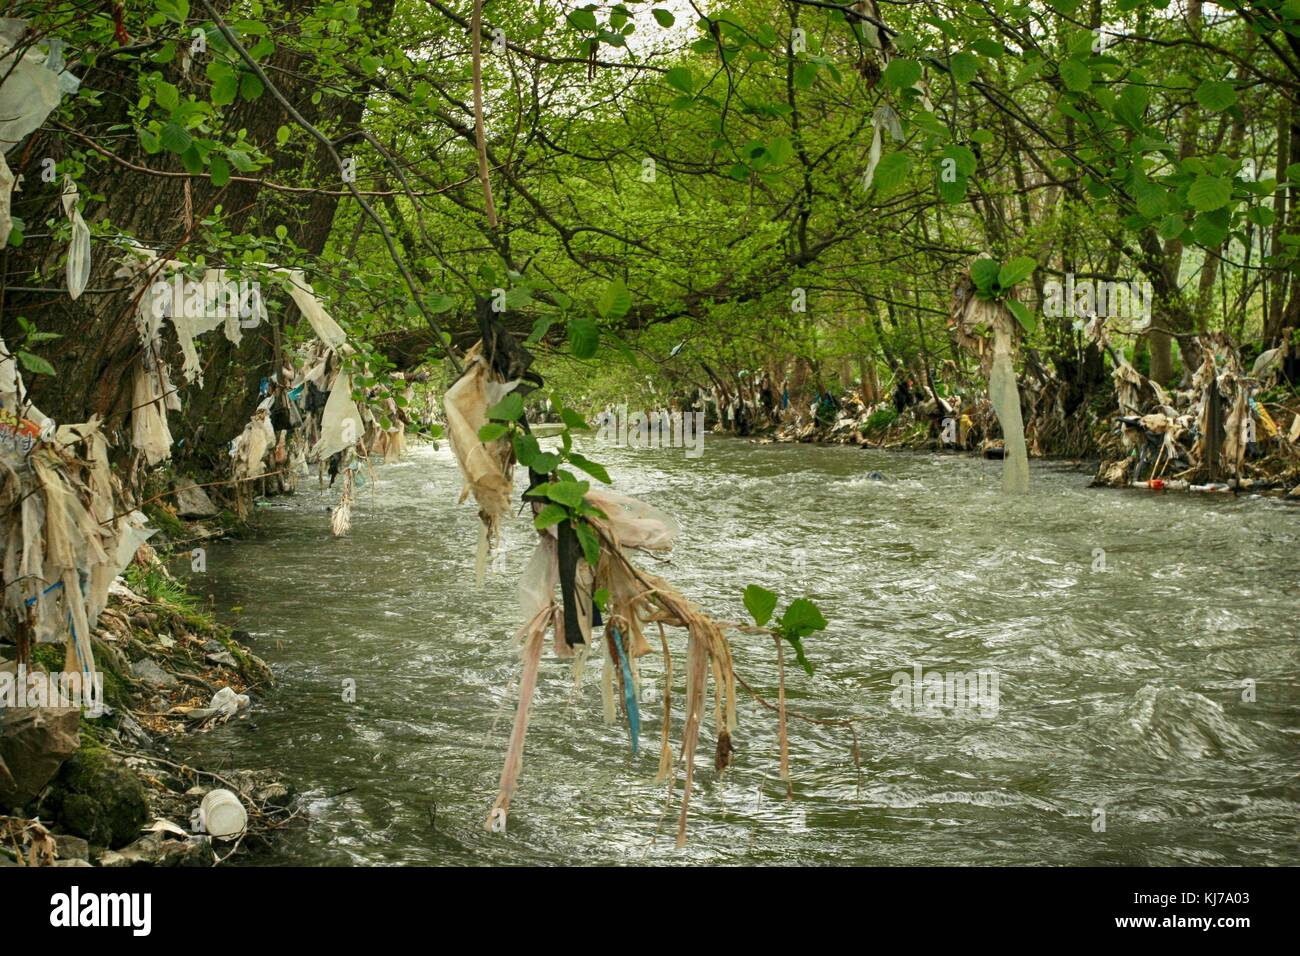 Plastic polluted Raska River in Serbia, Europe - Stock Image